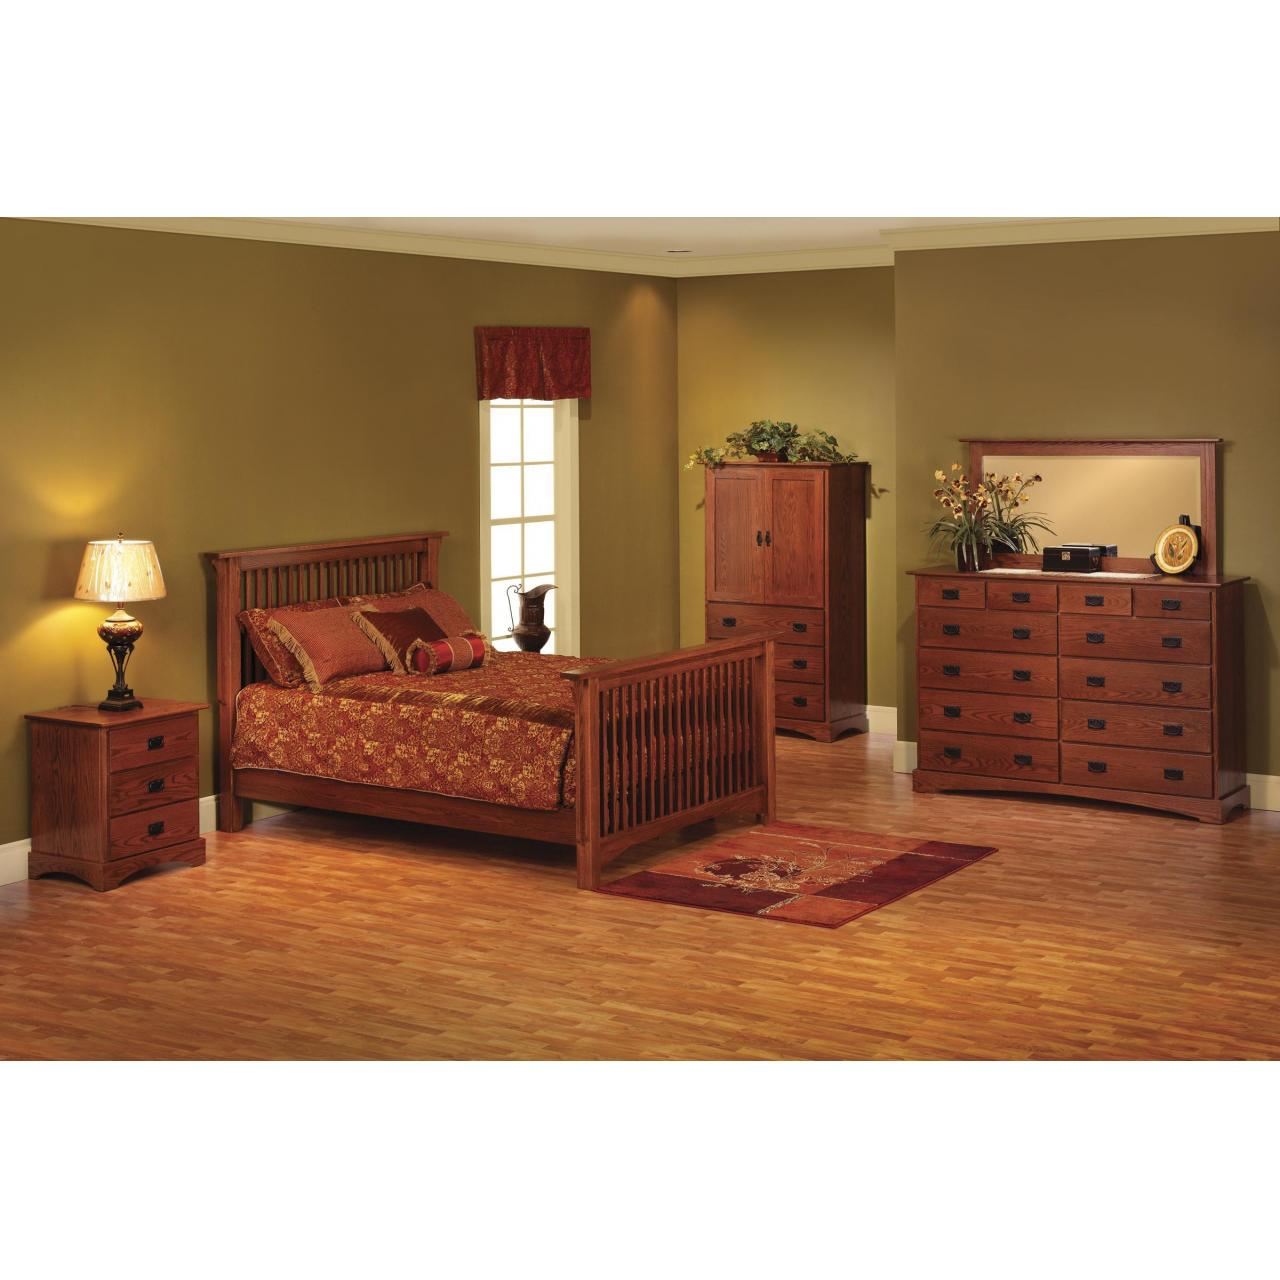 Cheap Craftsman Bedroom Furniture wholesale